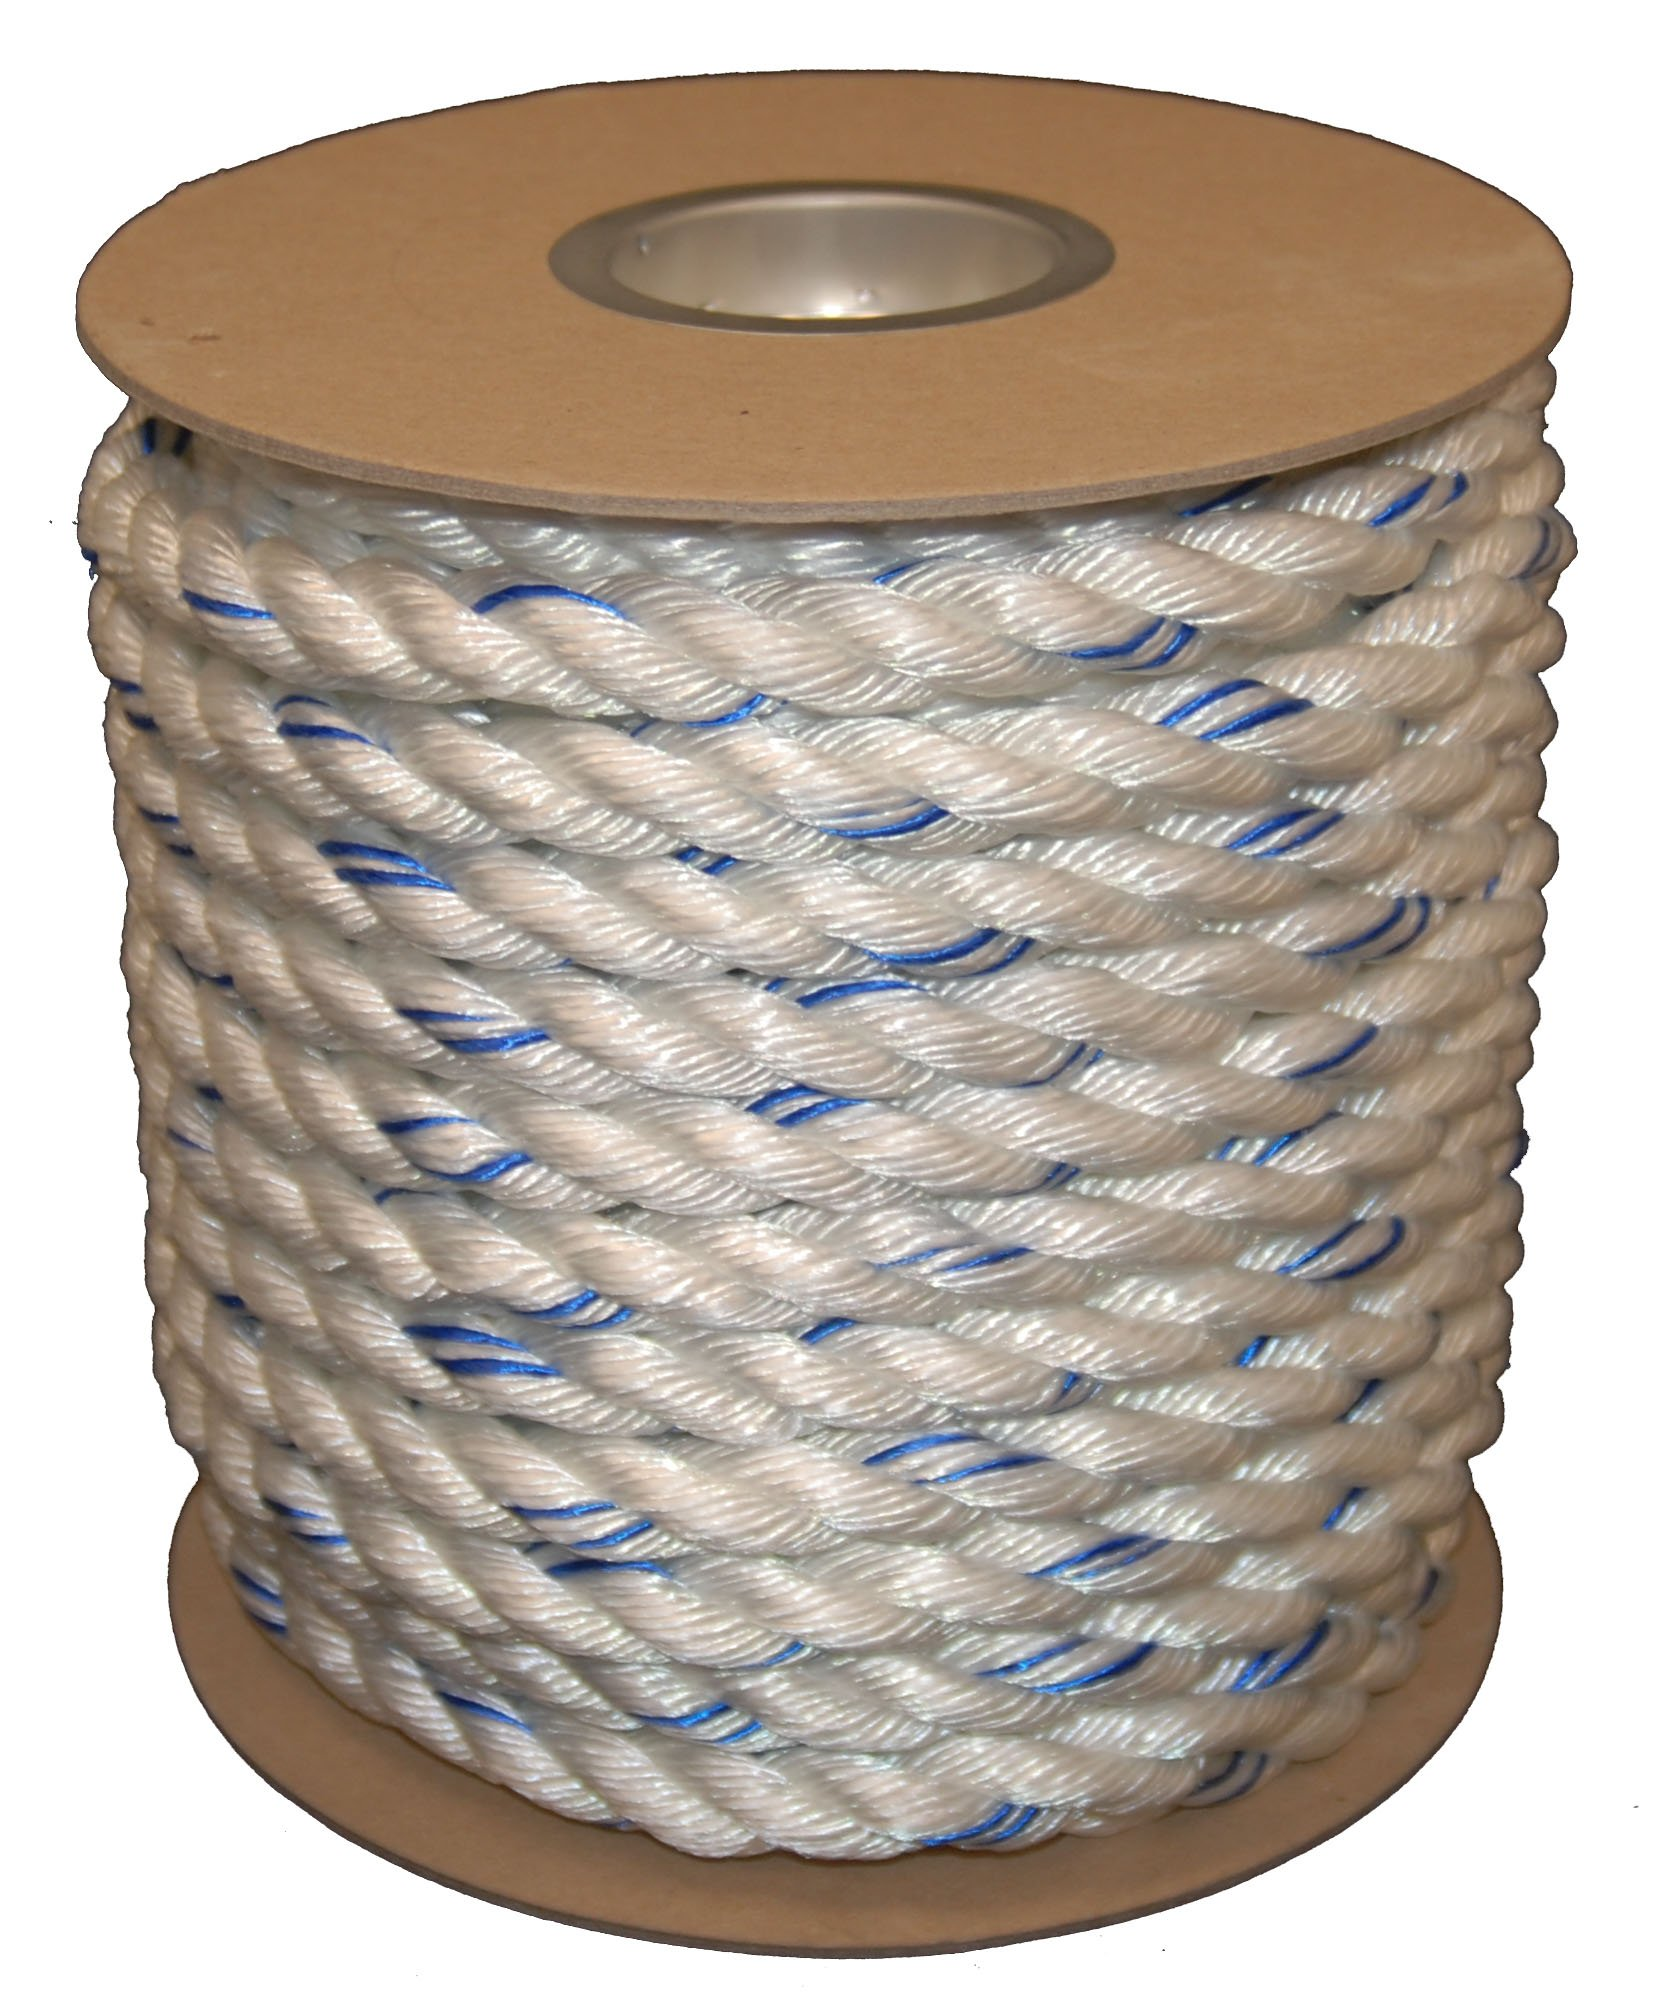 T.W Evans Cordage 1256-100 Buffalo Blend 3/4 inch x 100' Polydac Poly Dacron Combo Rope, 3/4 inch x 600', White